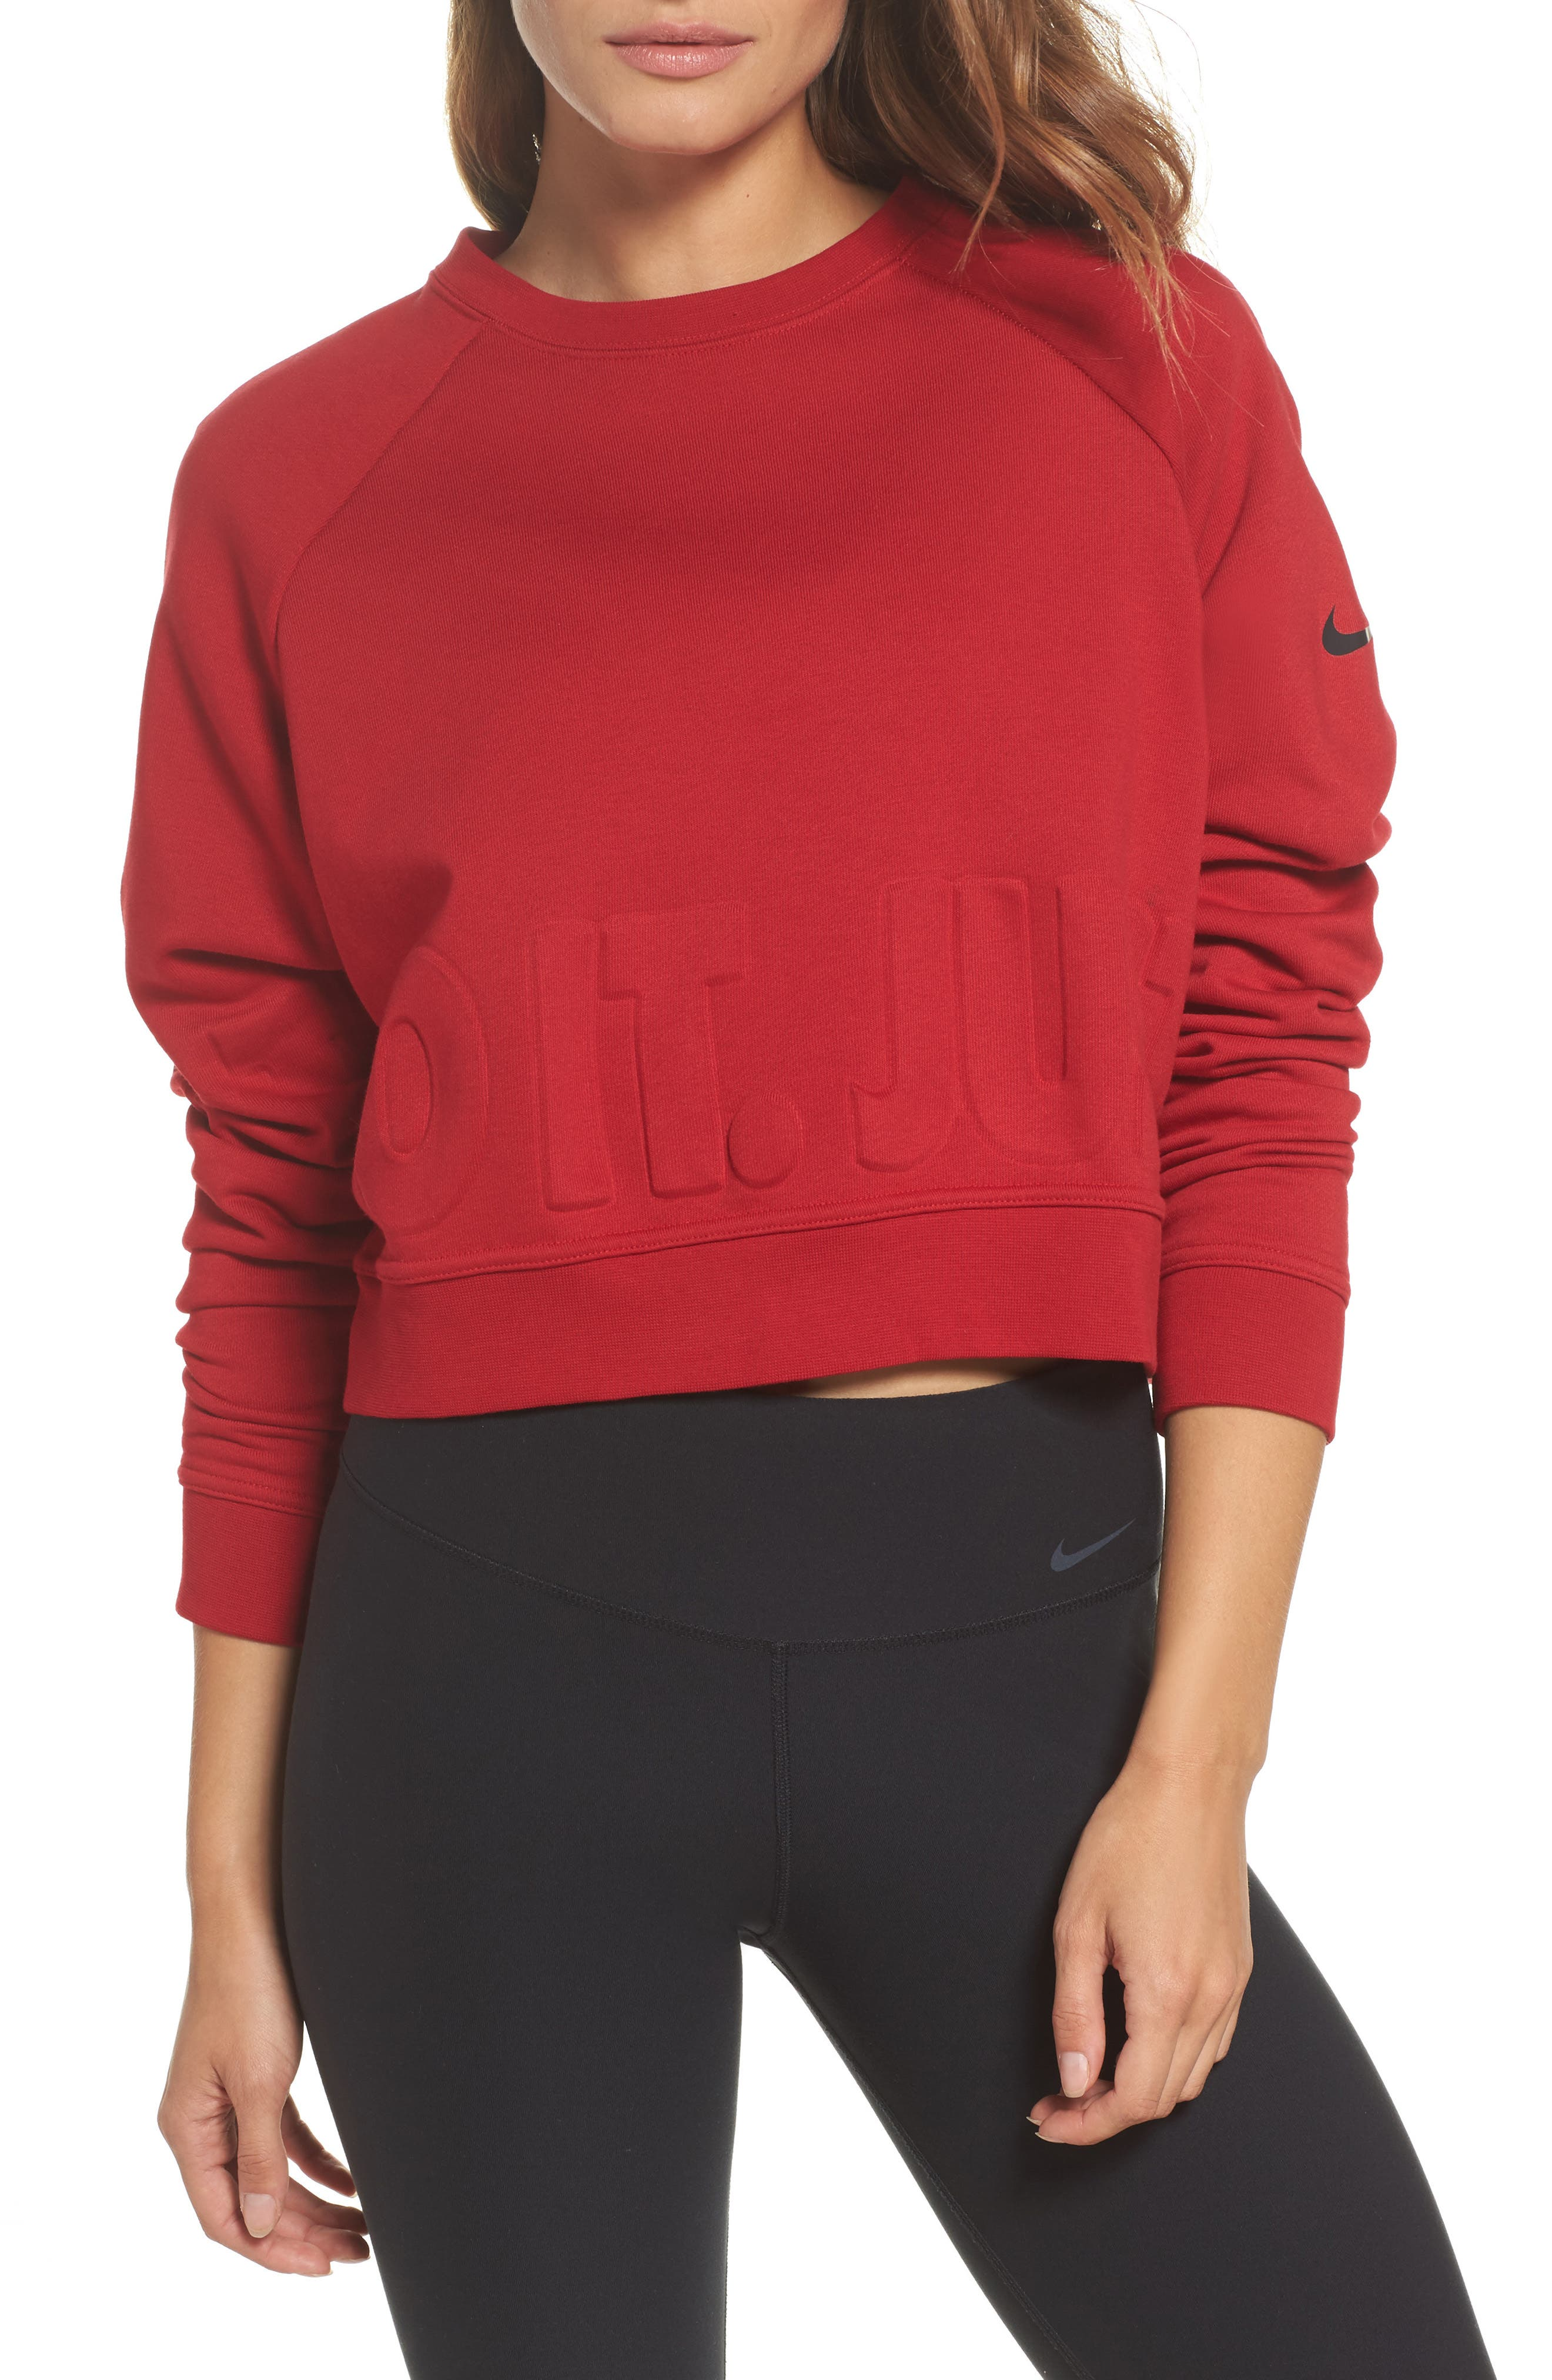 Long Sleeve Crop Training Top,                         Main,                         color, Gym Red/ Black